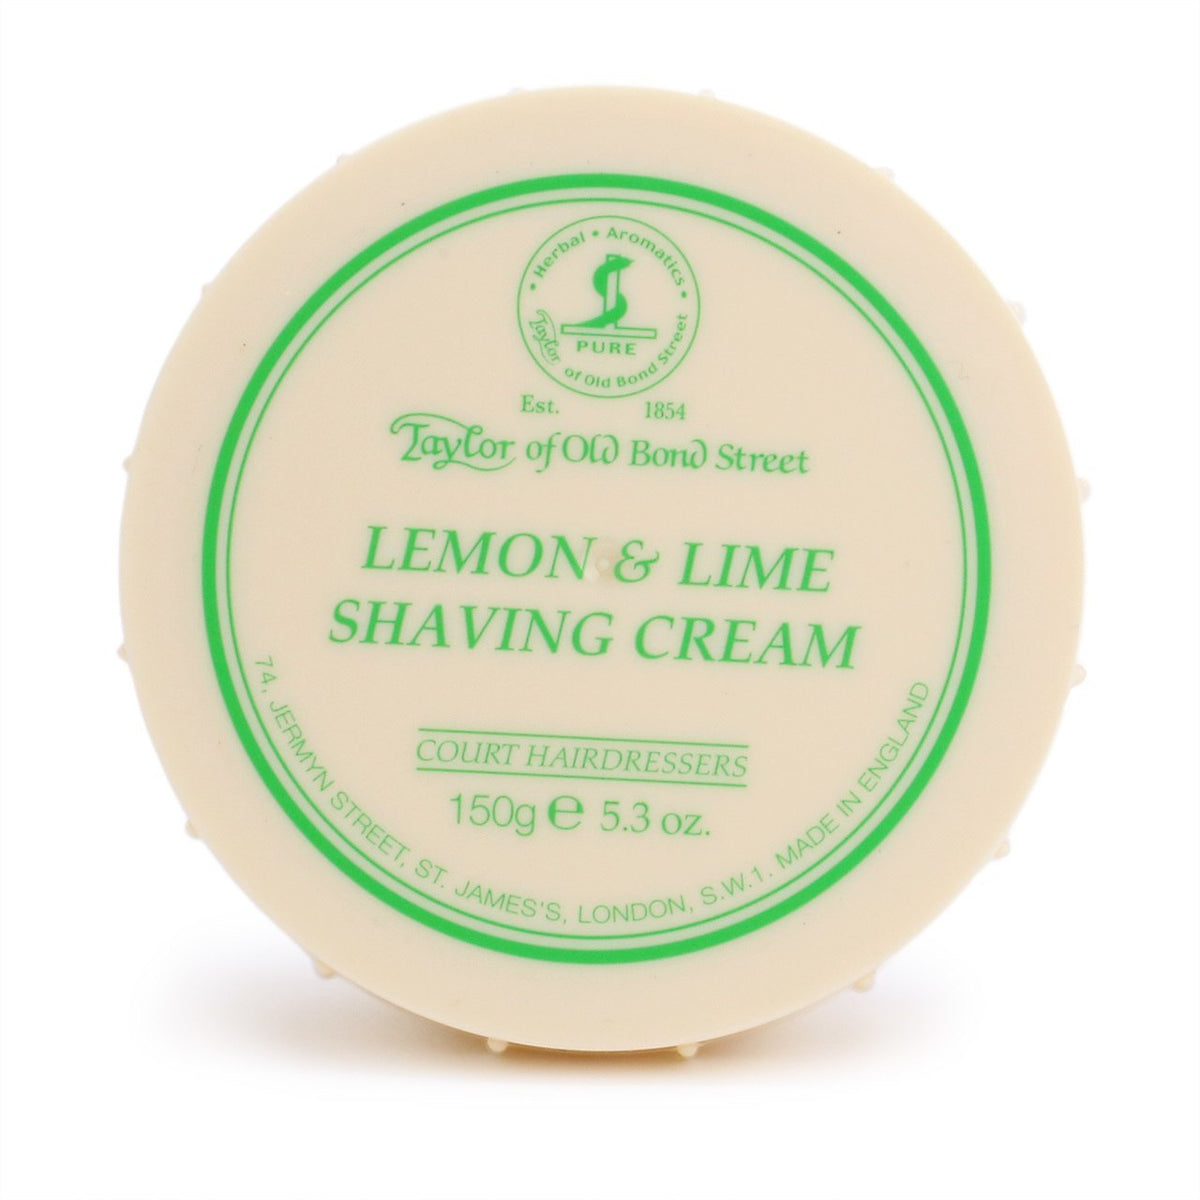 Taylor of Old Bond Street Shaving Cream Bowl 150g - Lemon and Lime